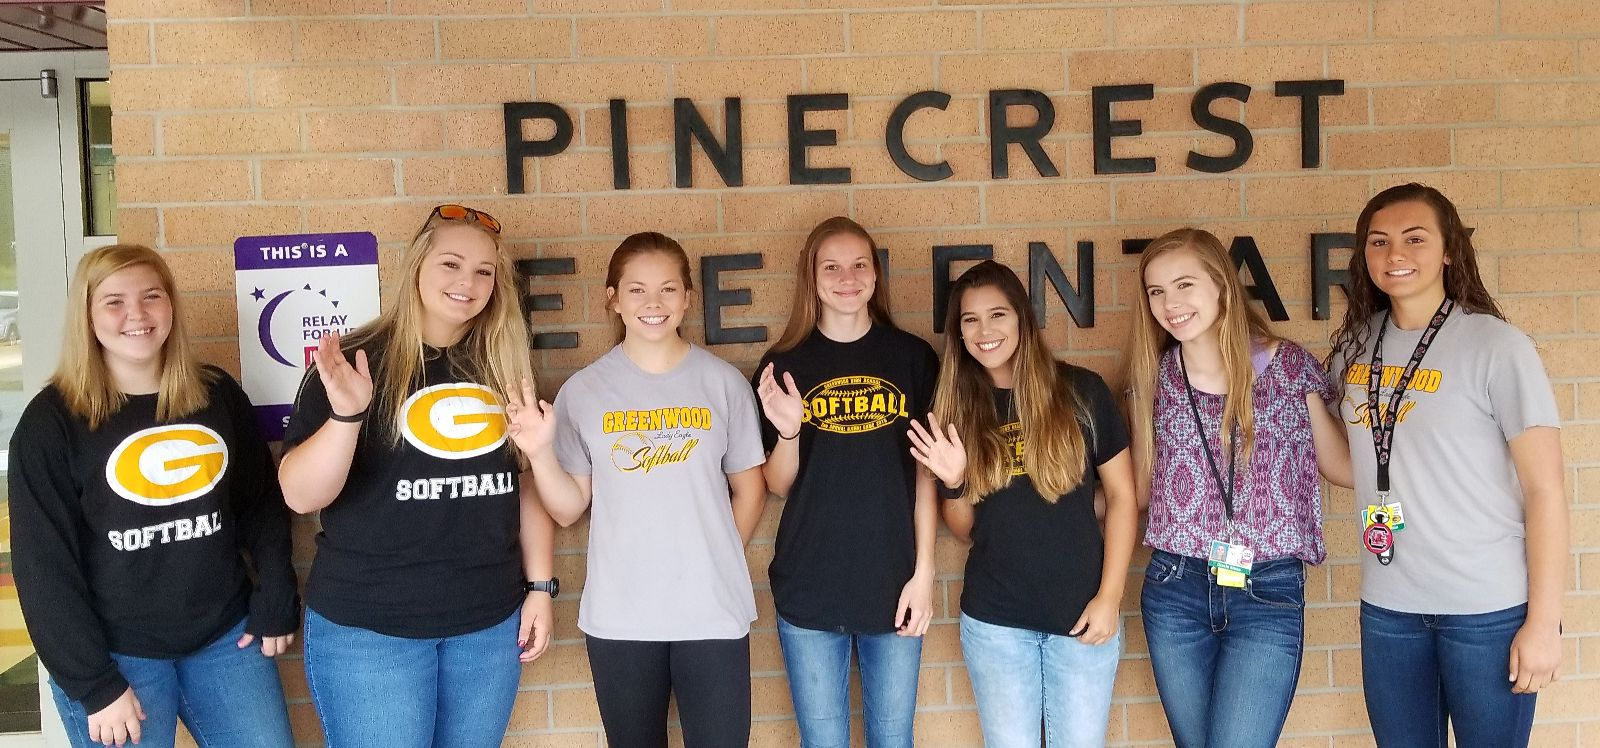 Softball Greets Students at Pinecrest Elementary